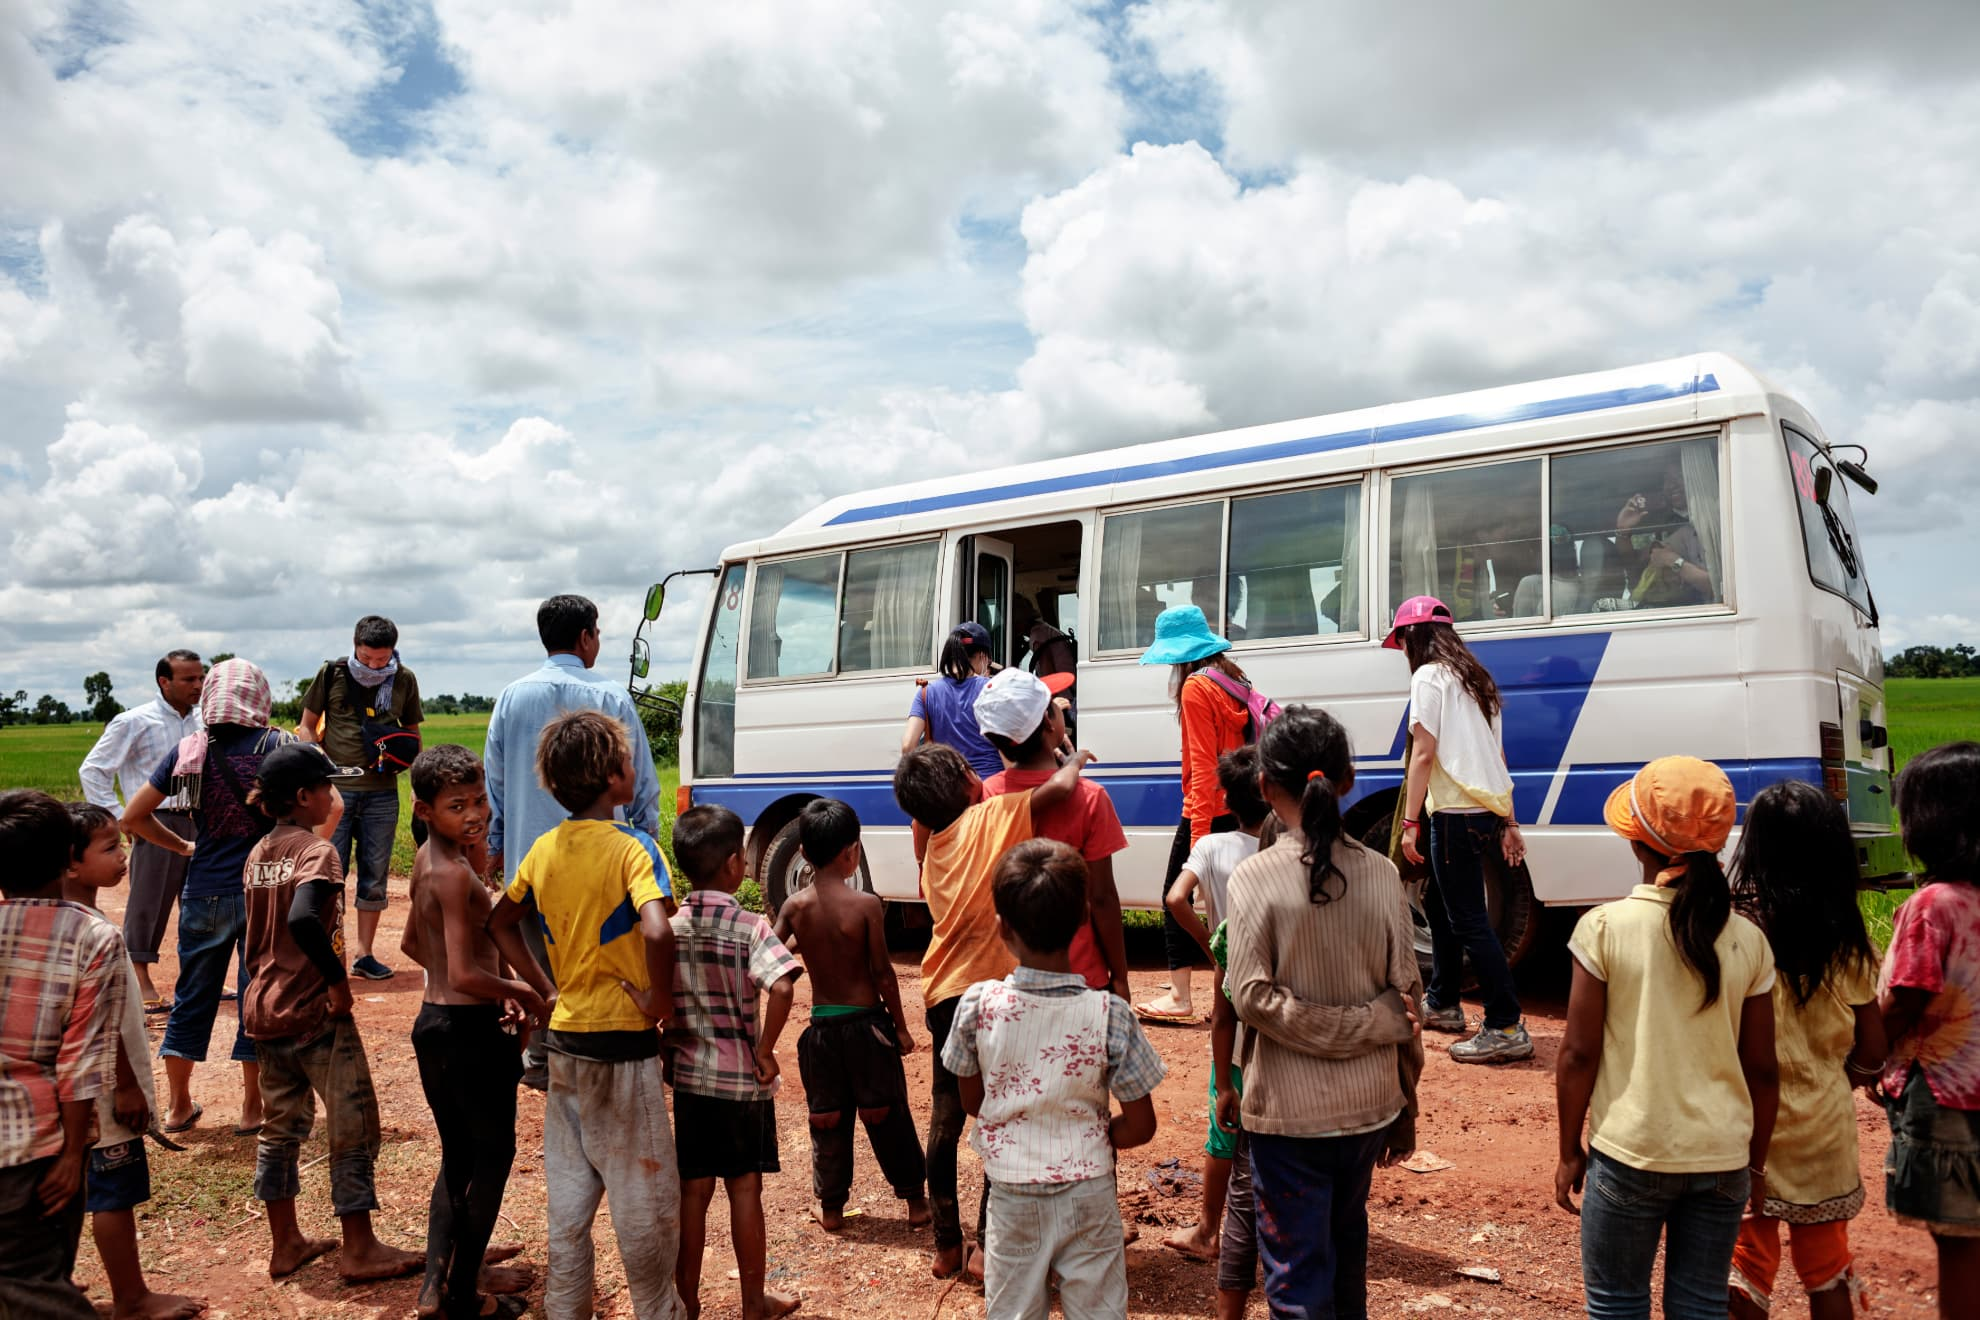 The tourist bus departs leaving behind the children whose pictures were taken and who were given candy. Korean, English and Japanese tourists normally visit Siem Reap rubbish dump in Cambodia.